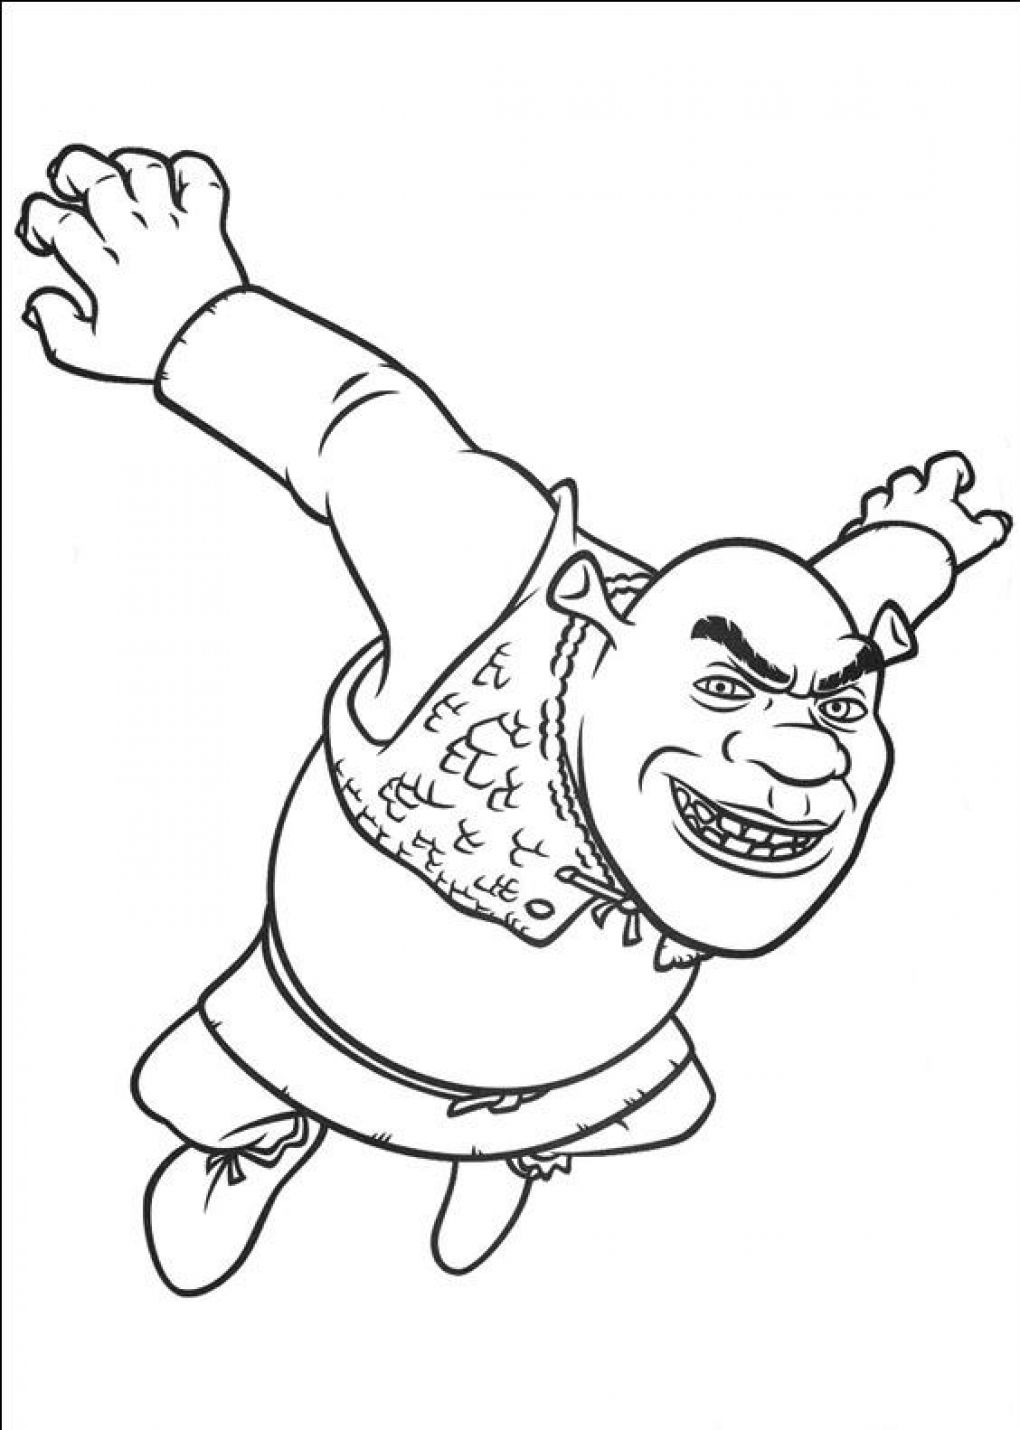 shreck coloring pages - photo#17